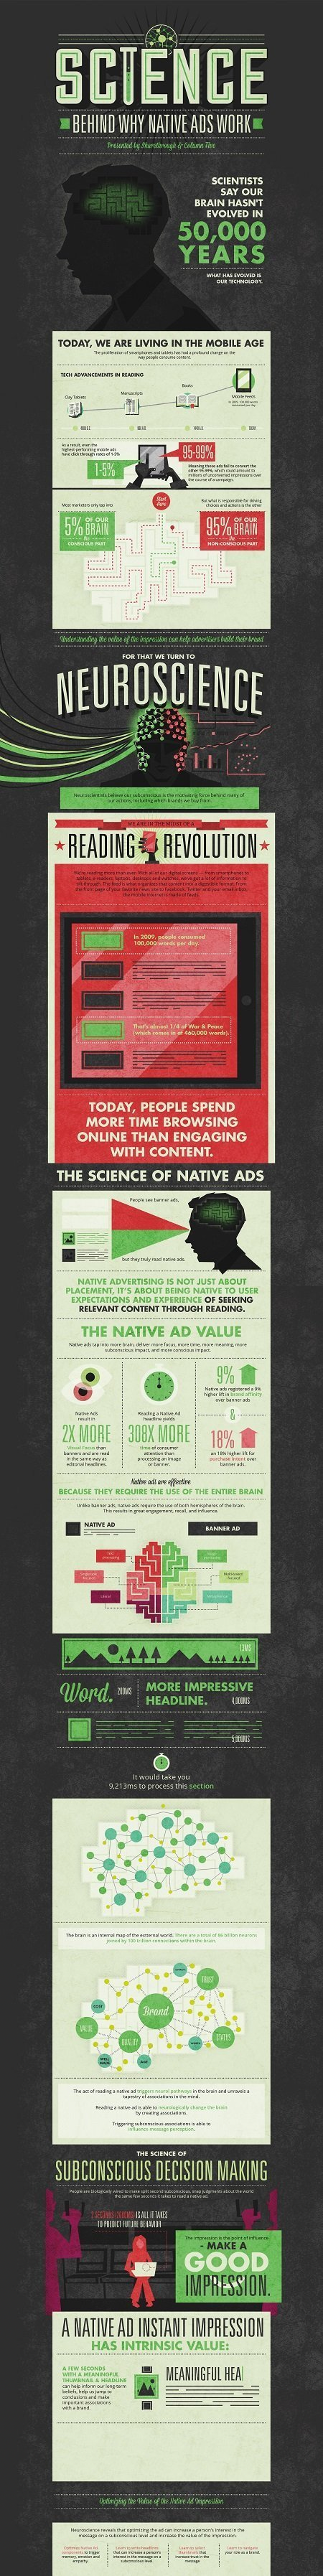 The Science Behind Why Native Ads Work [Infographic] | Integrated Brand Communications | Scoop.it